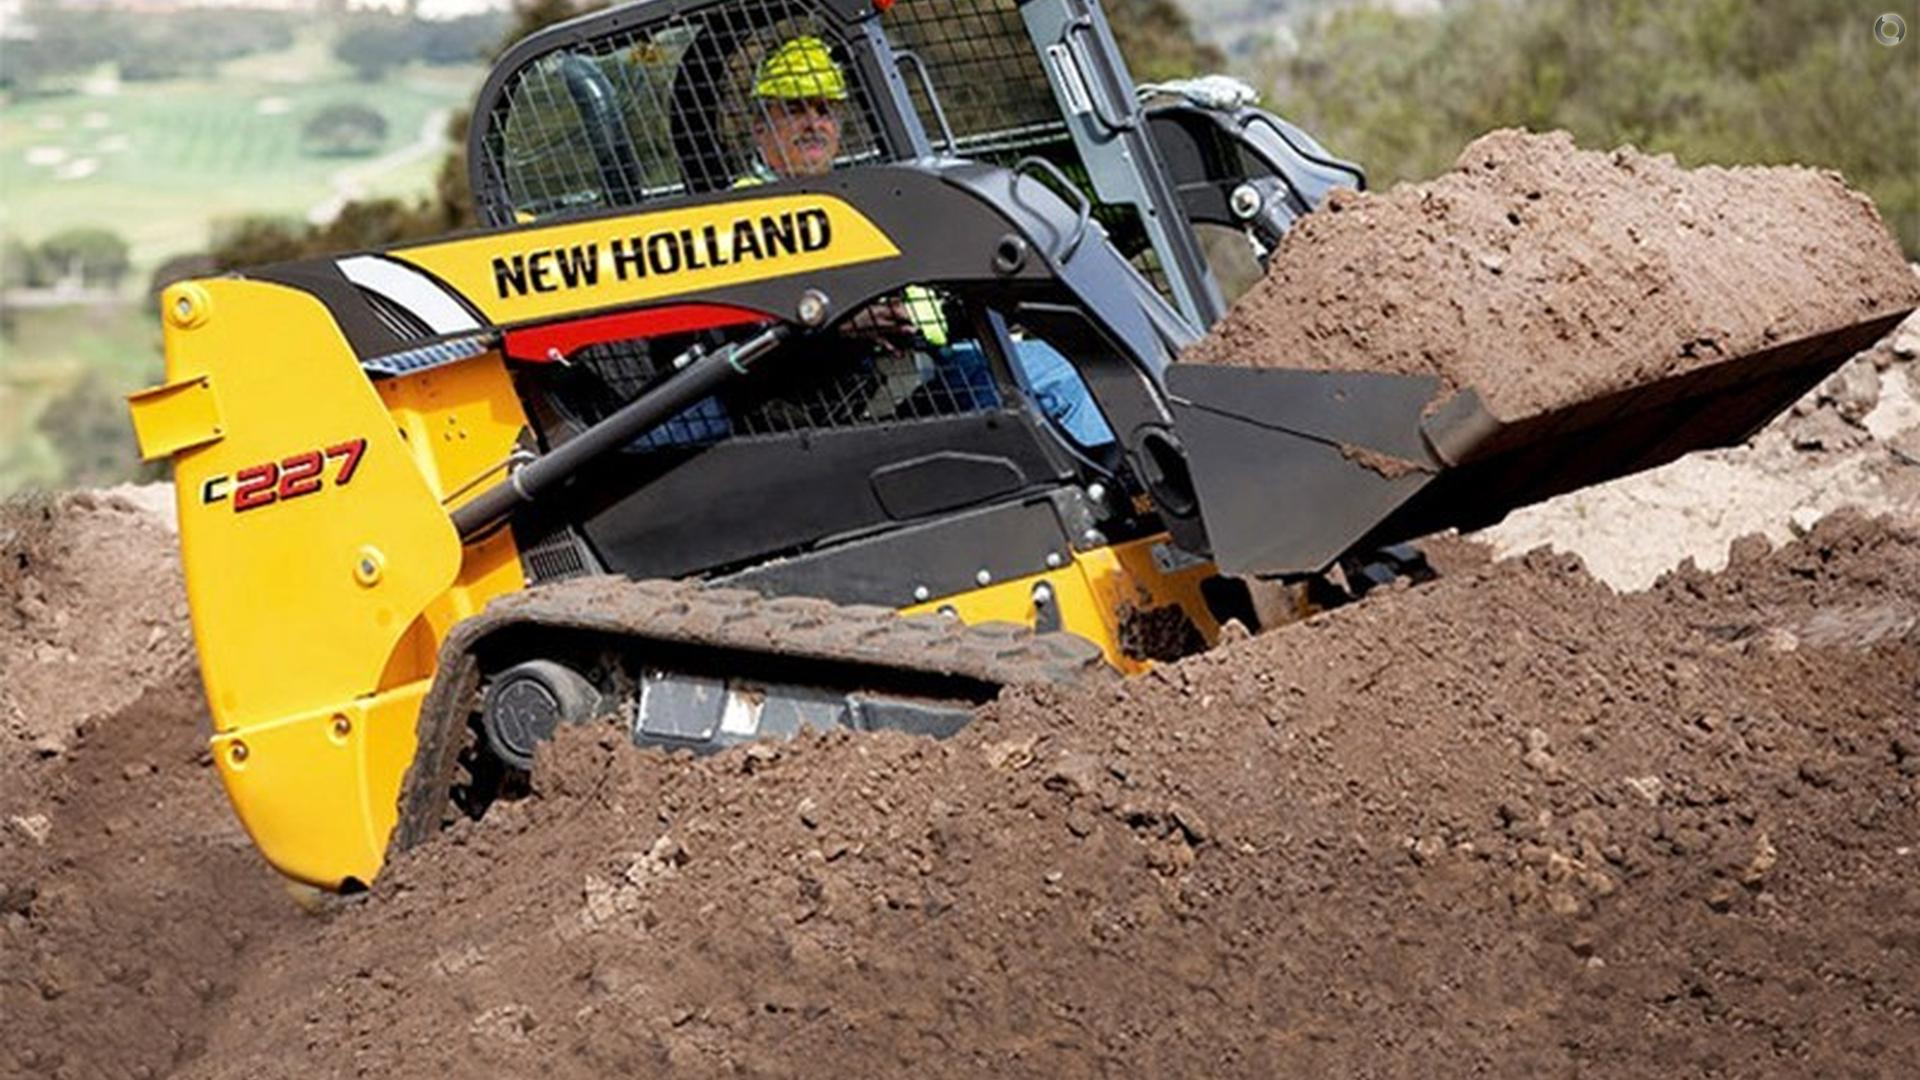 0 New Holland C227 Compact Track Loader